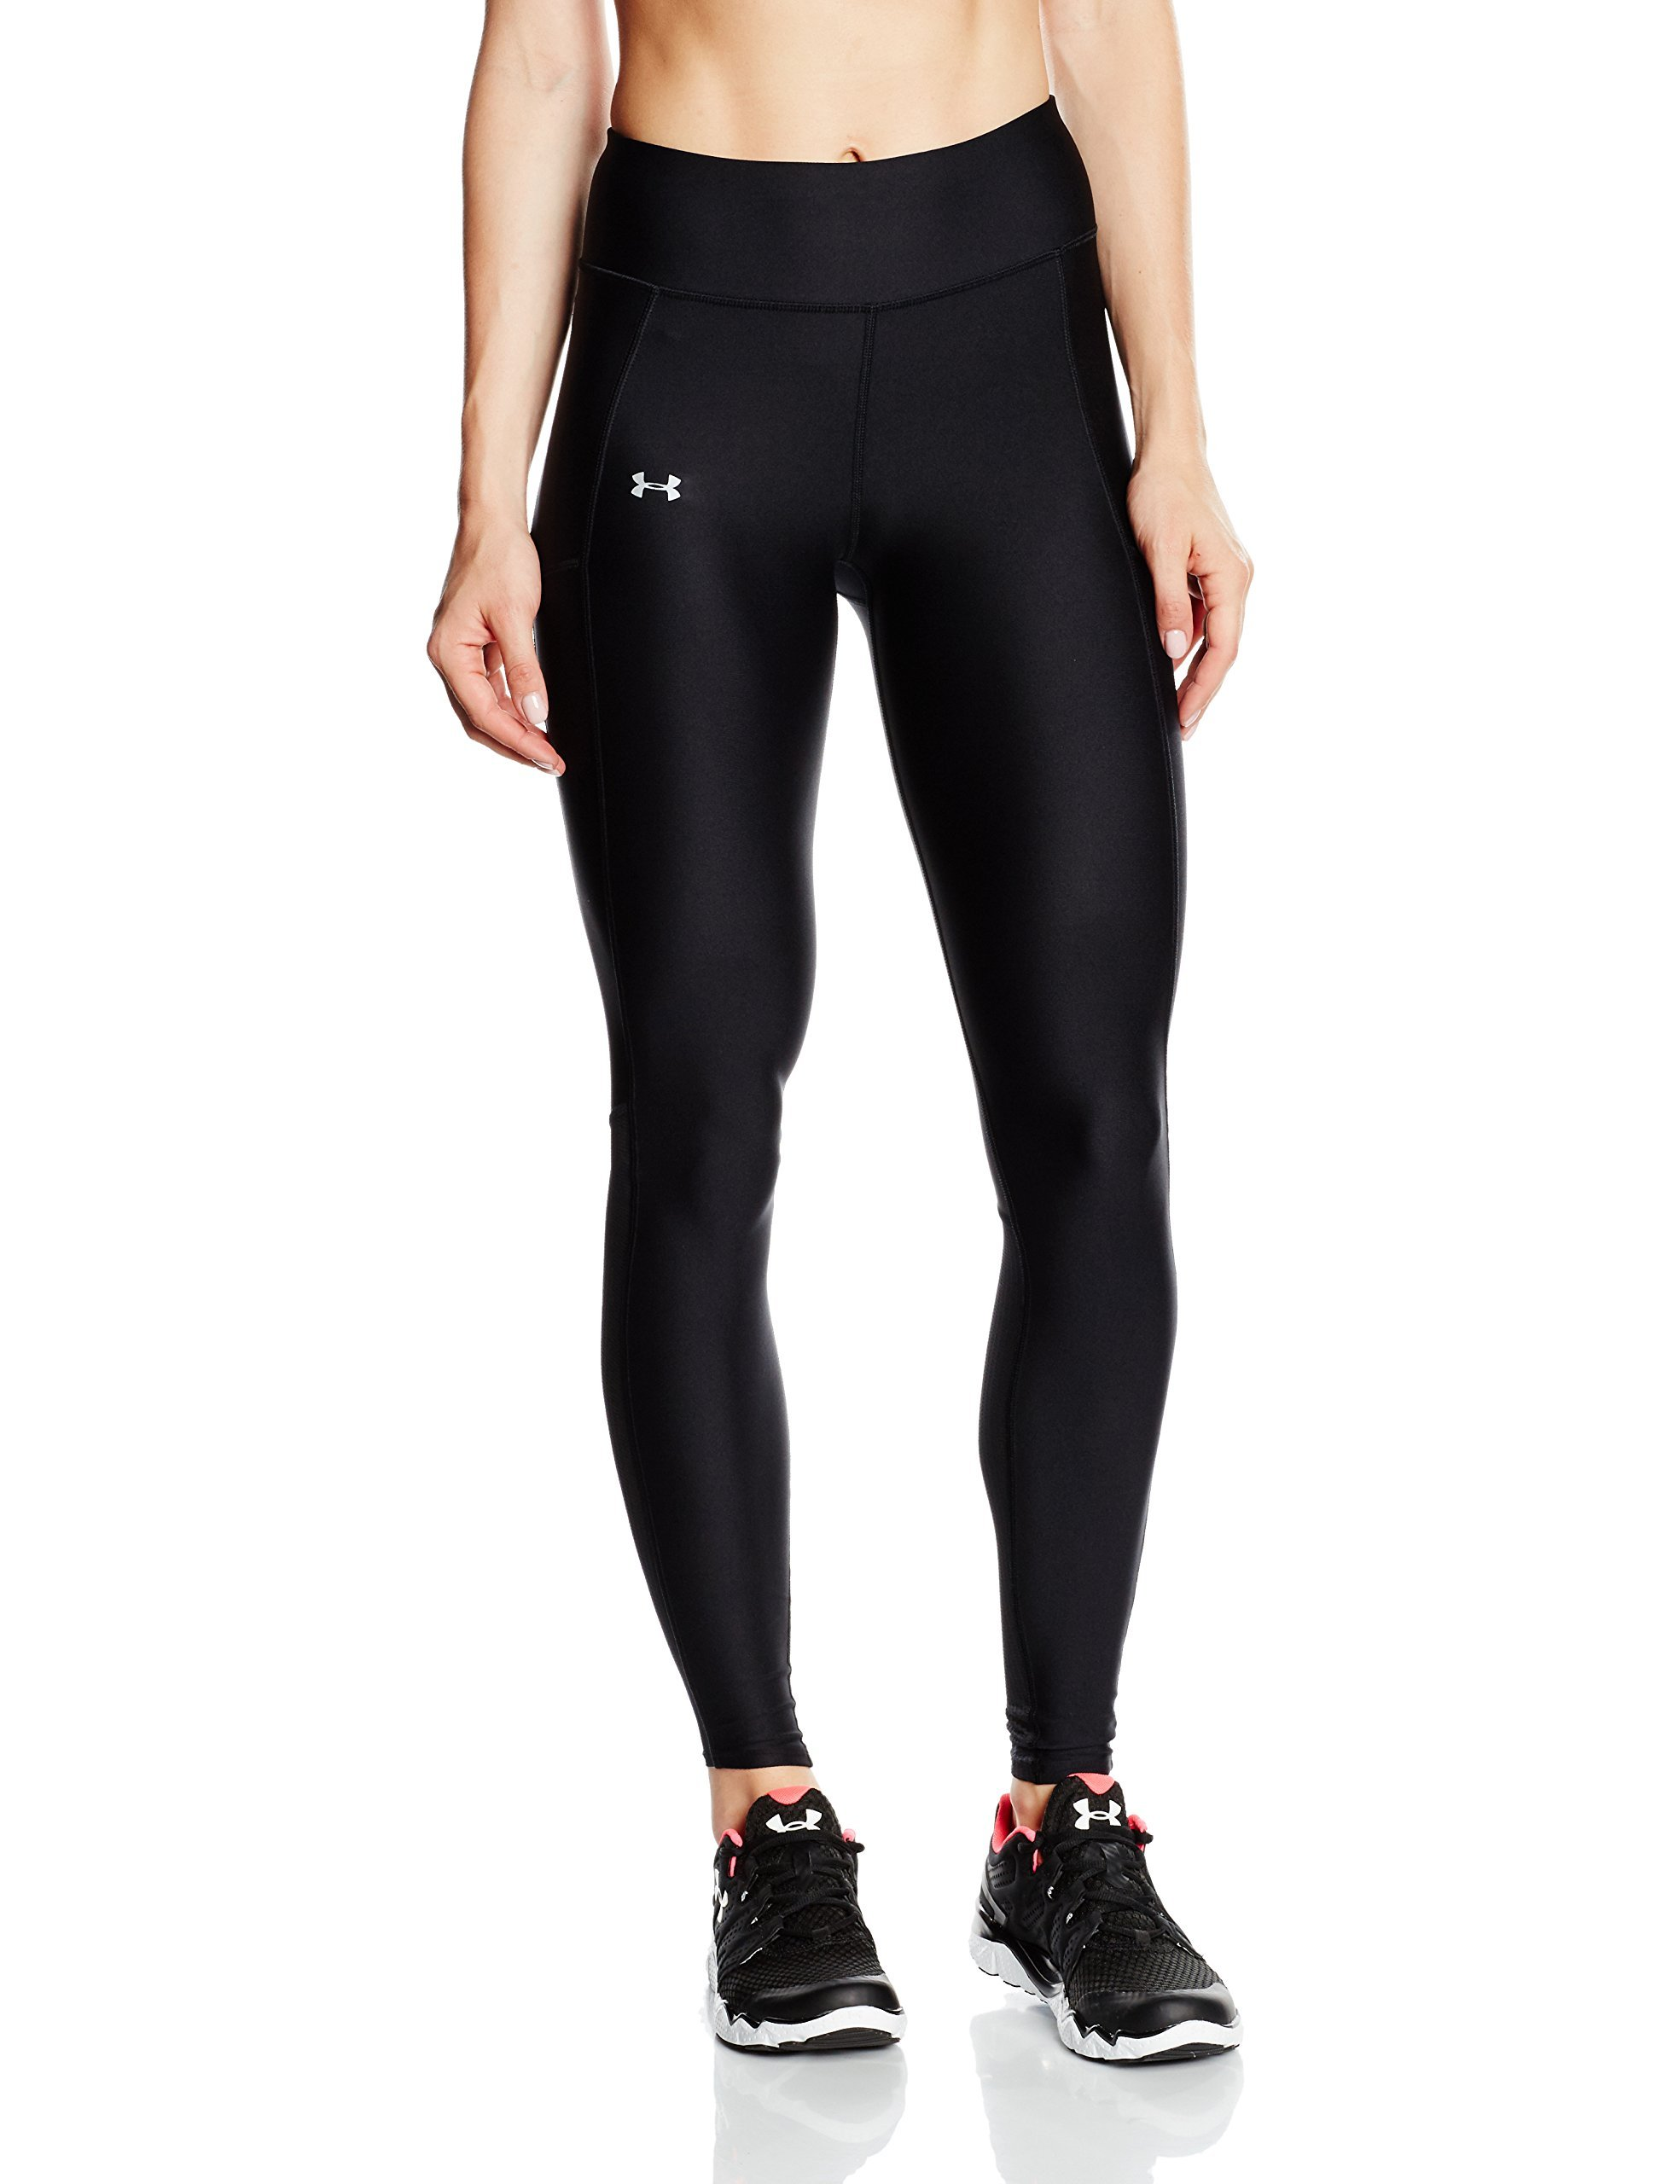 Under Armour Damen Running Kompressionswäsche Hose Legging, Black, XS